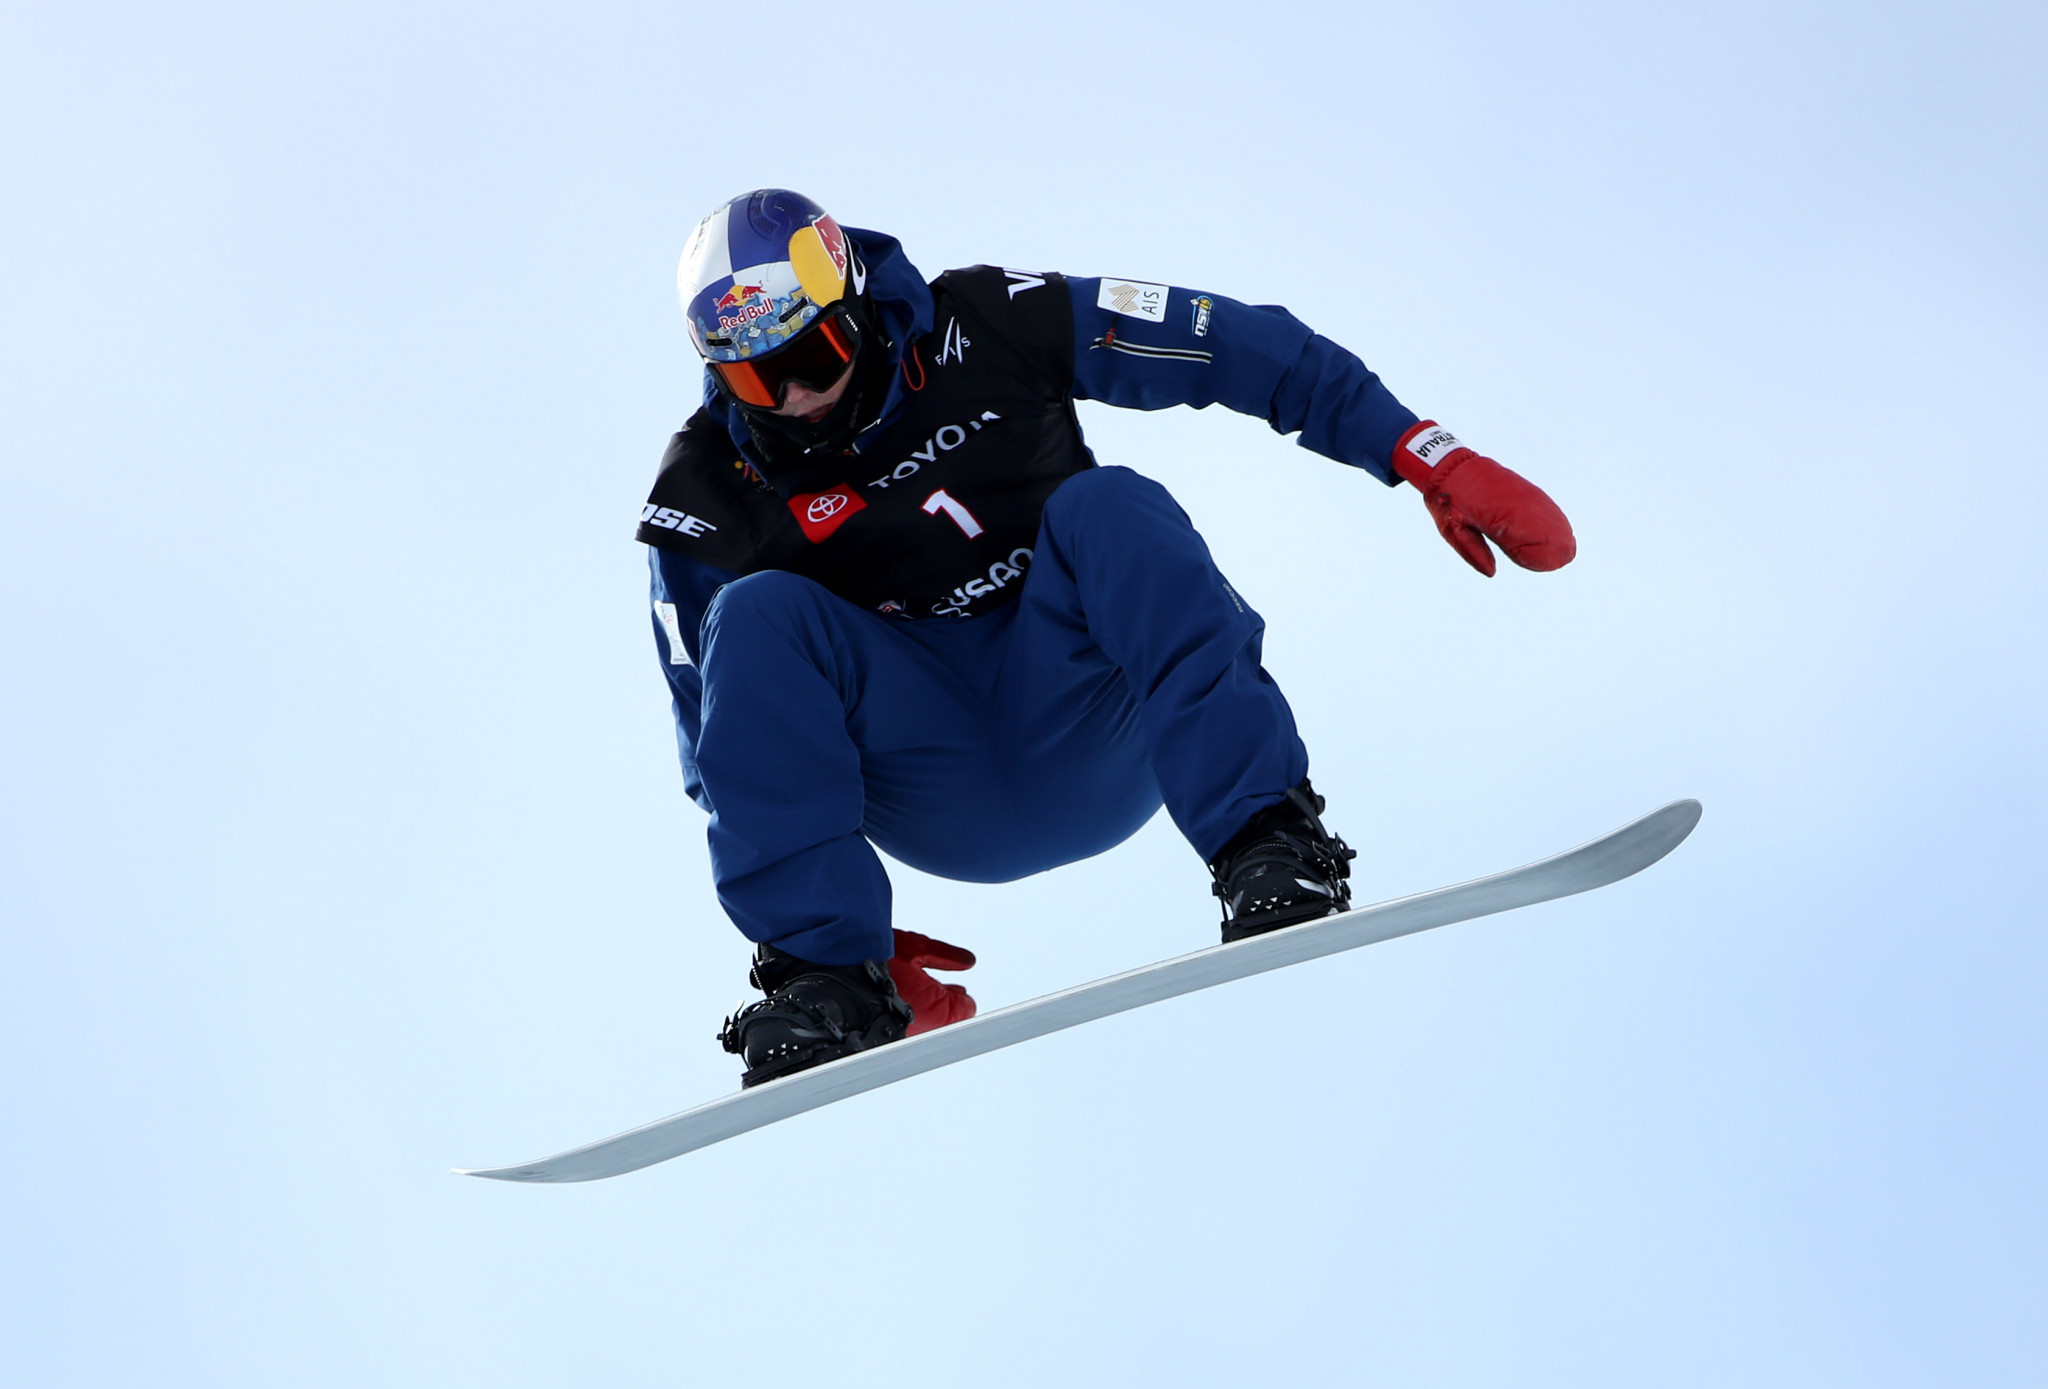 FIS Snowboard and Freestyle Skiing World Cups set to continue in Calgary with halfpipe action